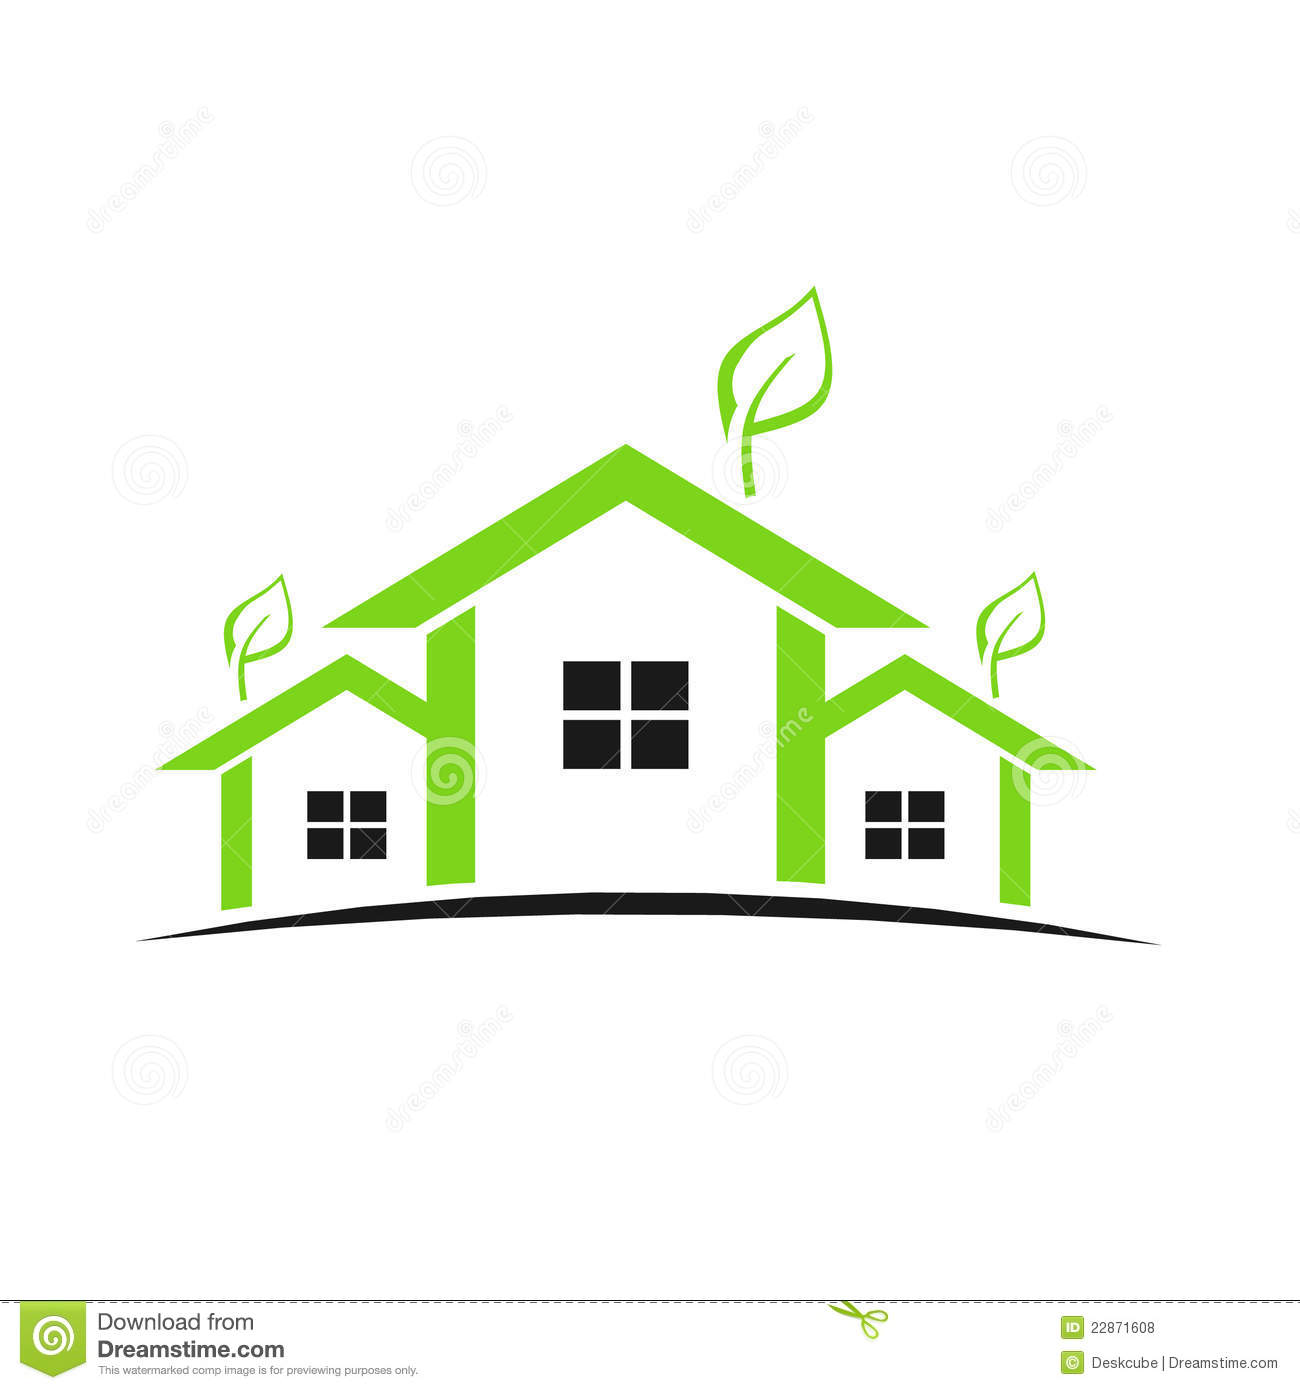 green houses logo royalty free stock photos image 22871608